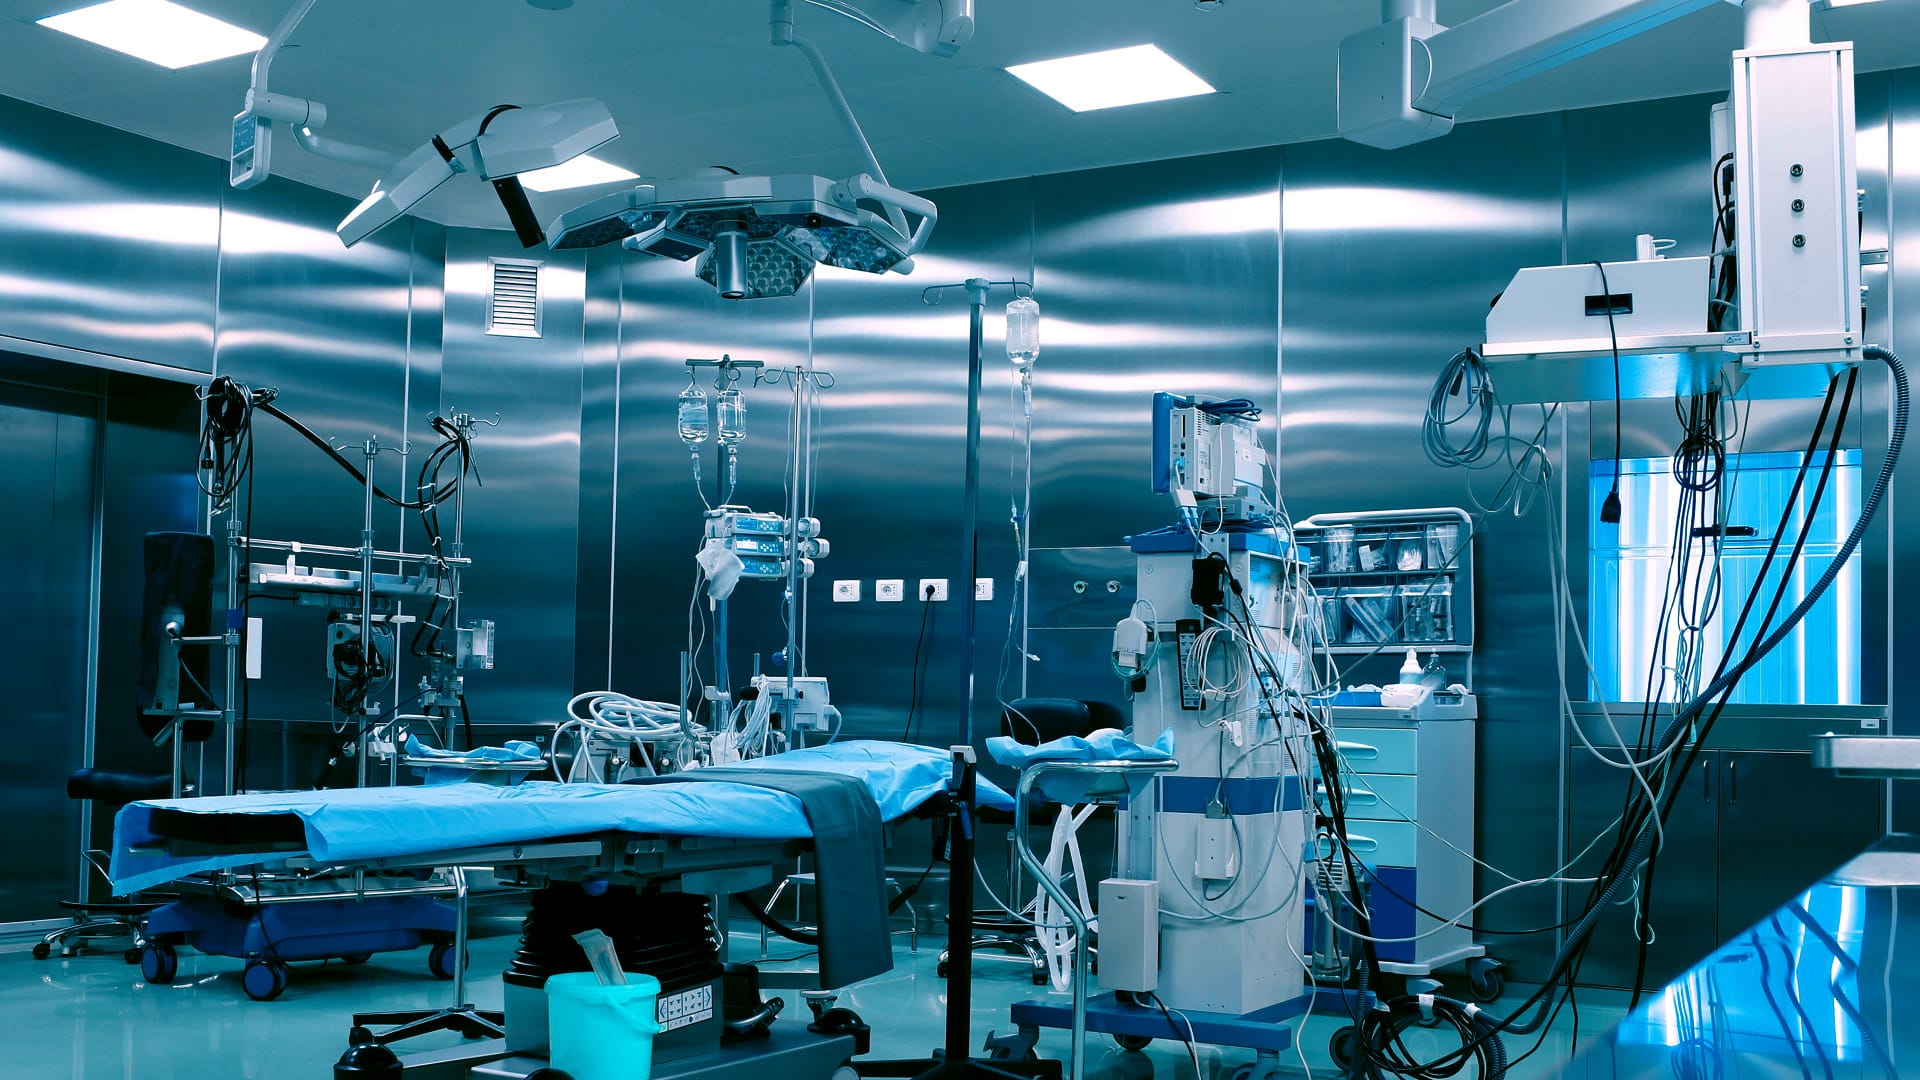 Govt gives nod to several firms under PLI scheme for medical devices